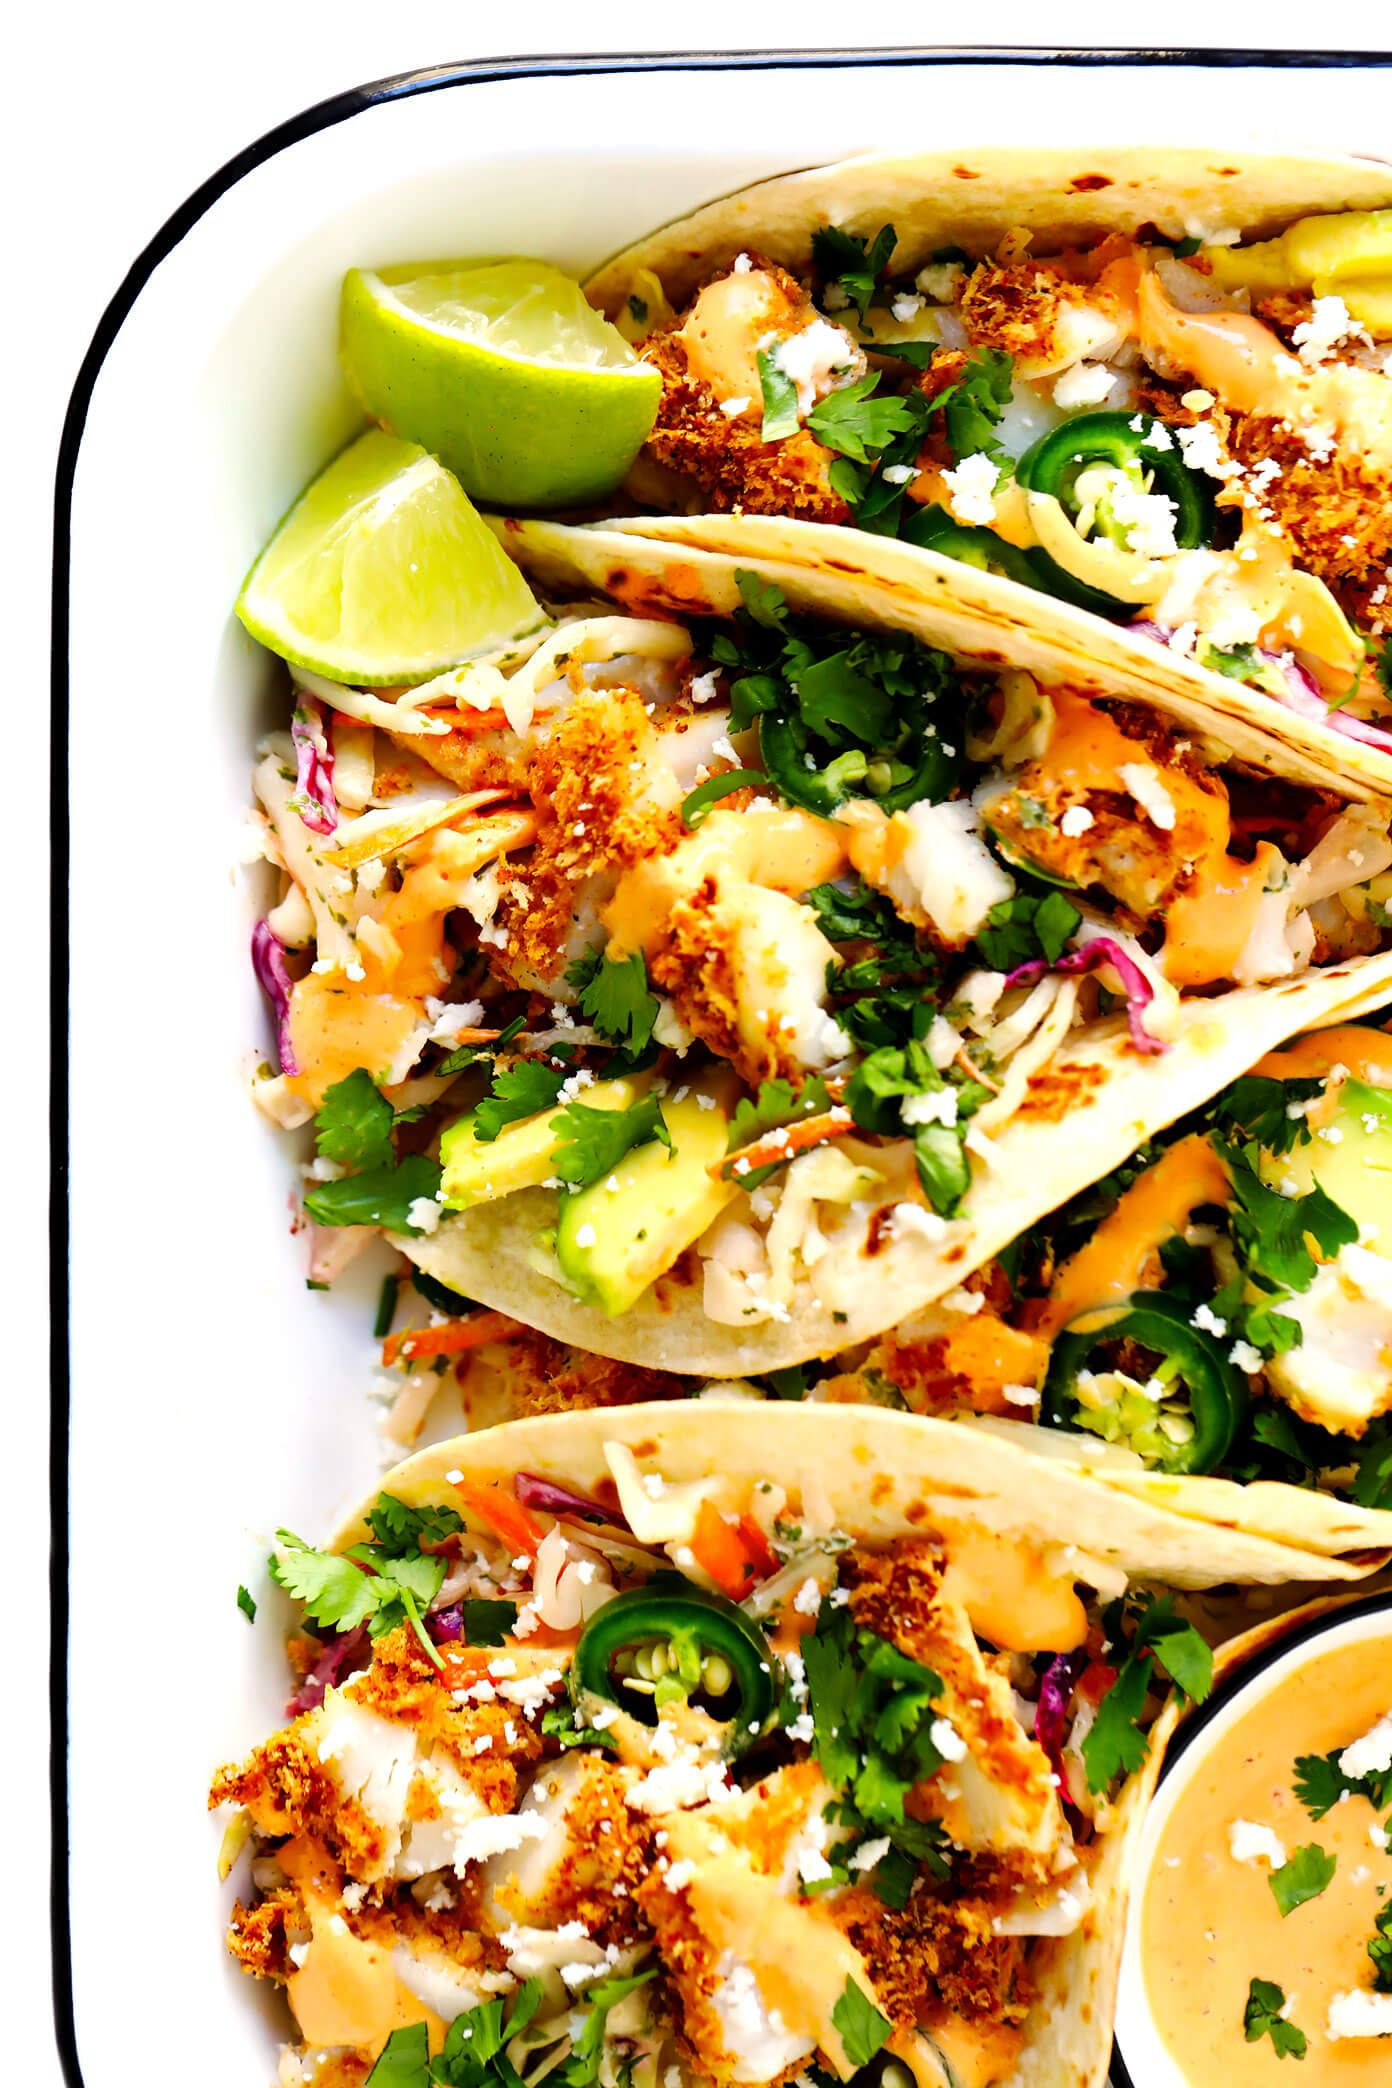 Life Changing Crispy Baked Fish Tacos Gimme Some Oven Recipe Baked Fish Tacos Fish Tacos Recipe Best Fish Taco Recipe